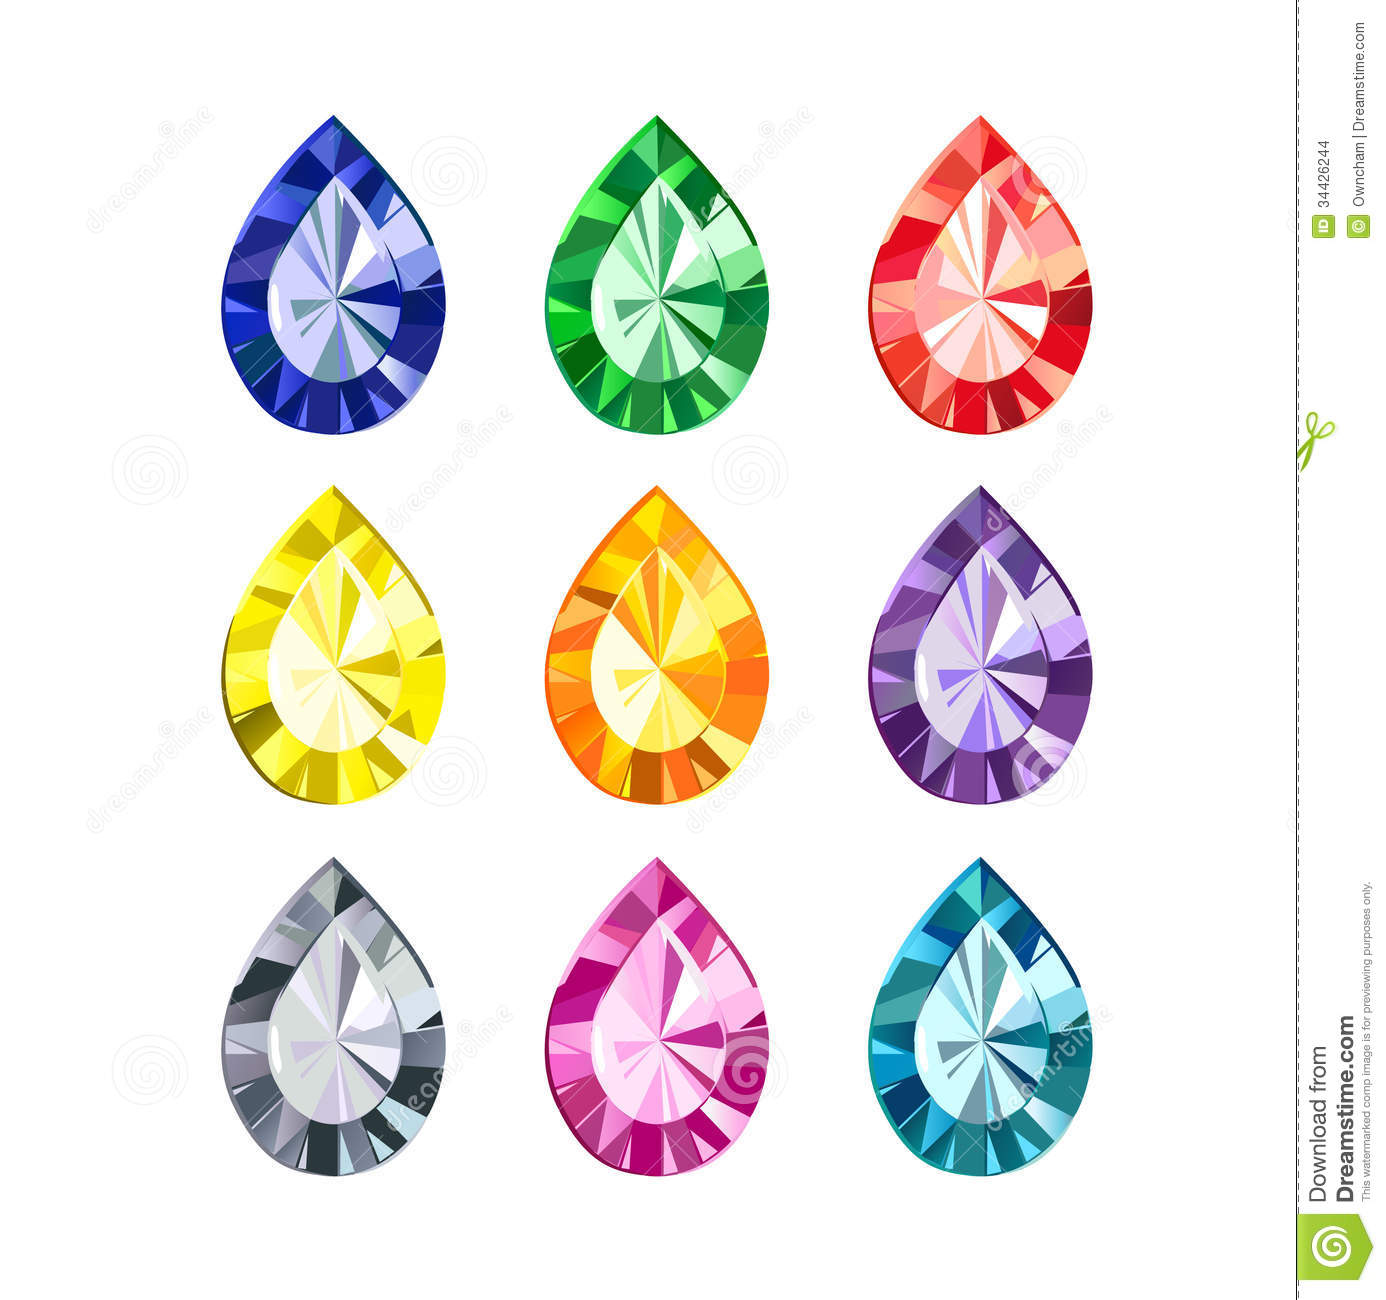 Gems clipart gemstone Clipart Jewels And gemstones Clipart